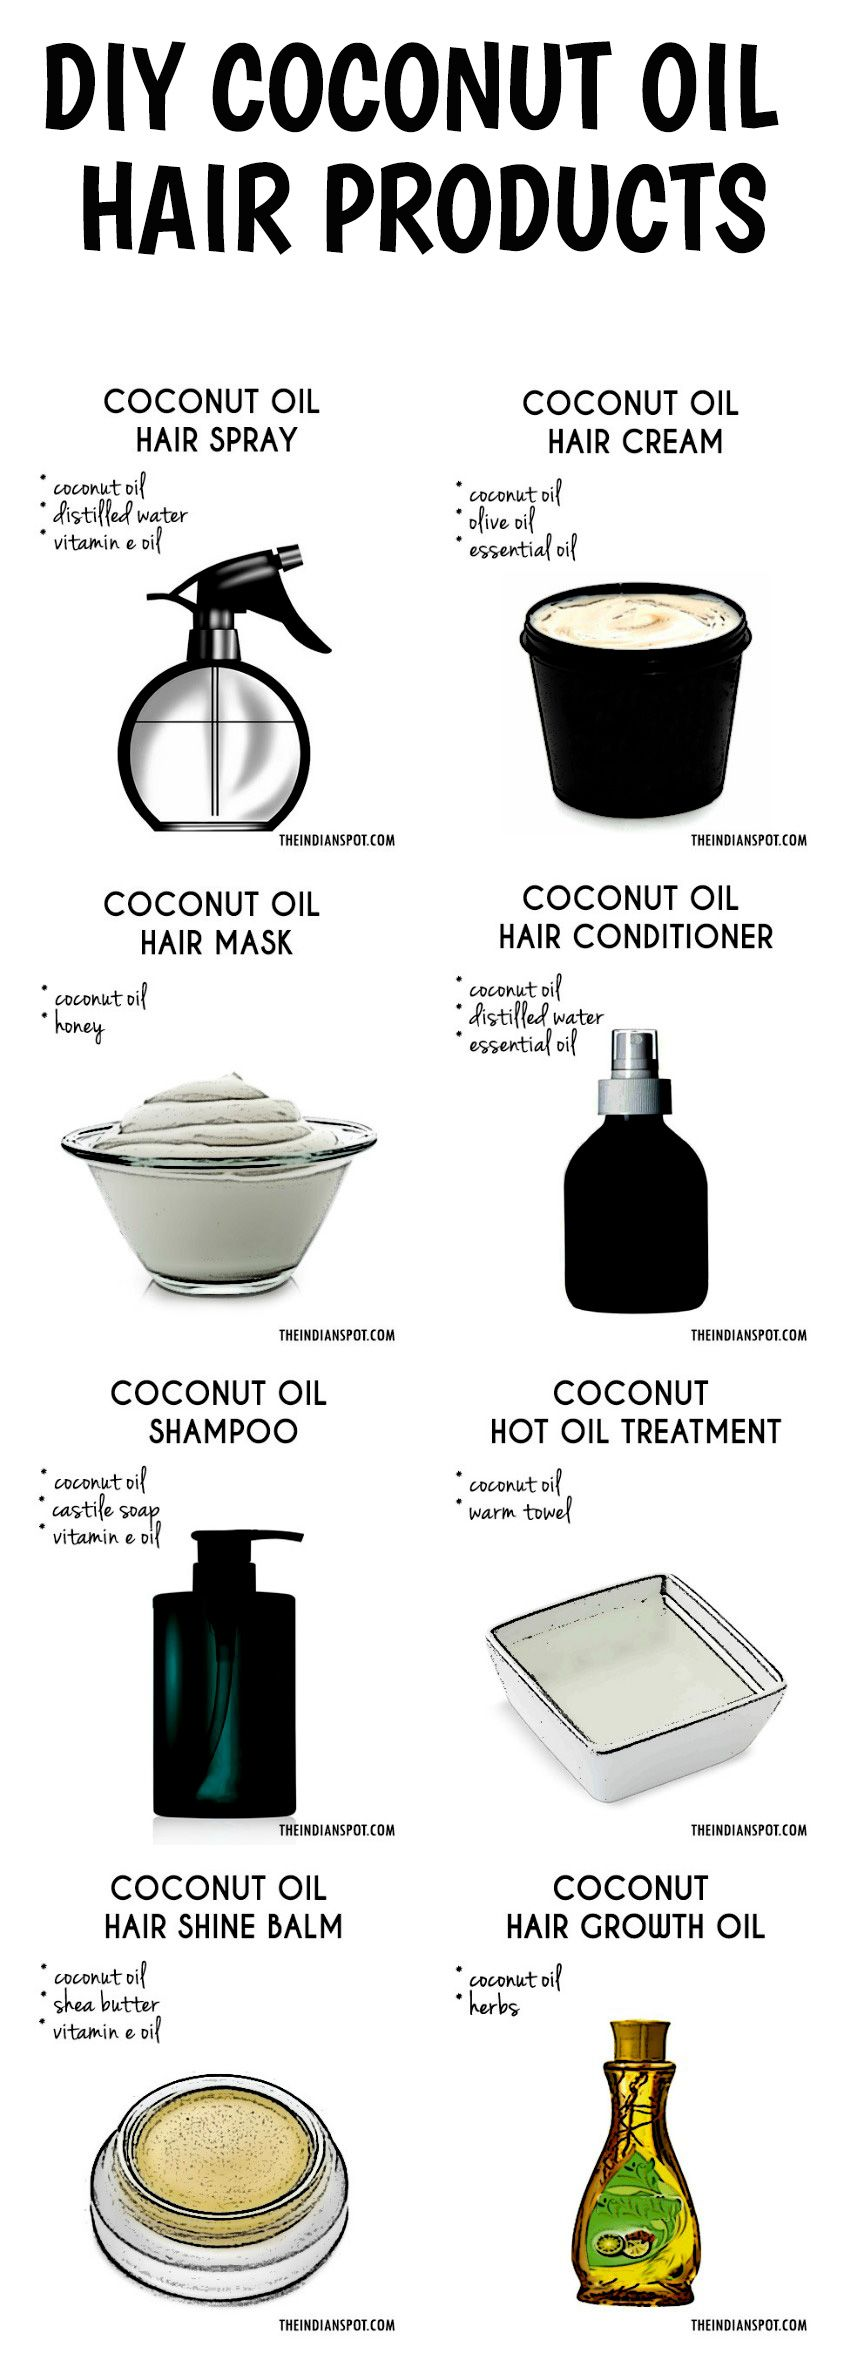 Coconut Oil The Good, The Bad & The Ugly is part of Coconut oil diy hair, Coconut oil hair spray, Coconut hair, Coconut oil hair, Coconut oil hair mask, Diy coconut oil - Learn about the benefits and pitfalls of coconut oil for natural hair  It's a penetrating, a good sealant, supports protein structure and is an antifungal